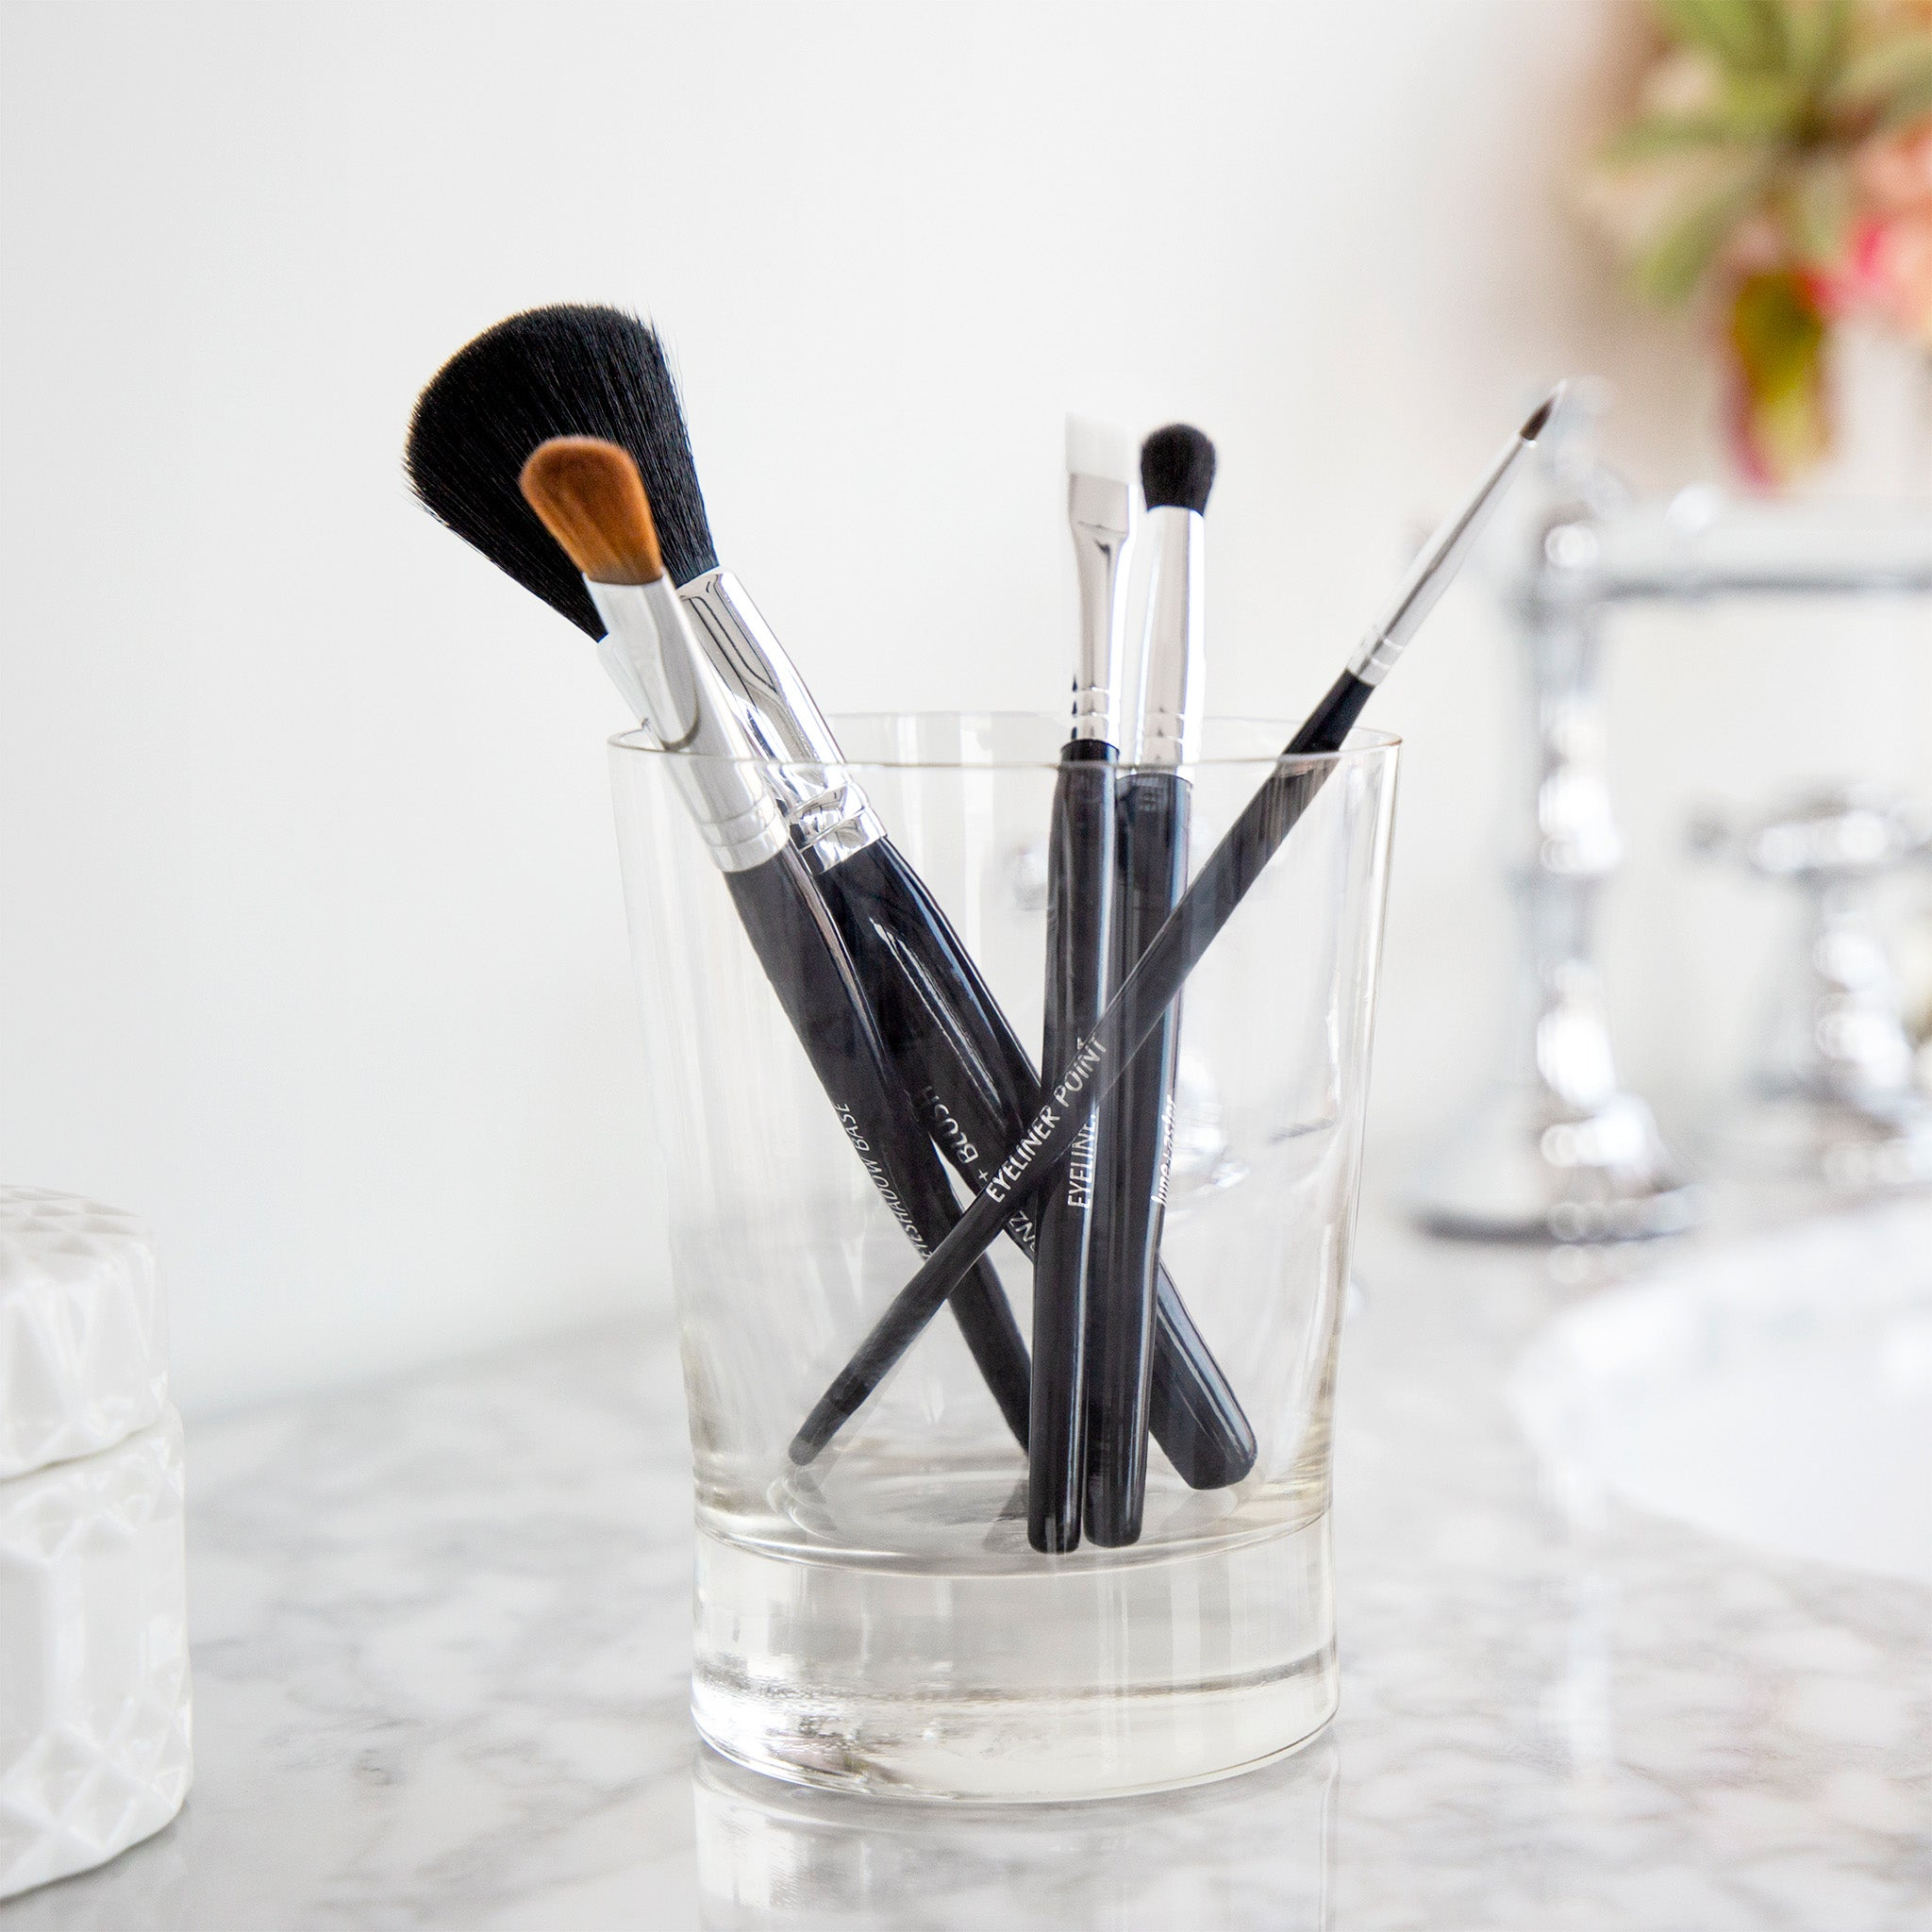 Fabulous in Five! Brush Set